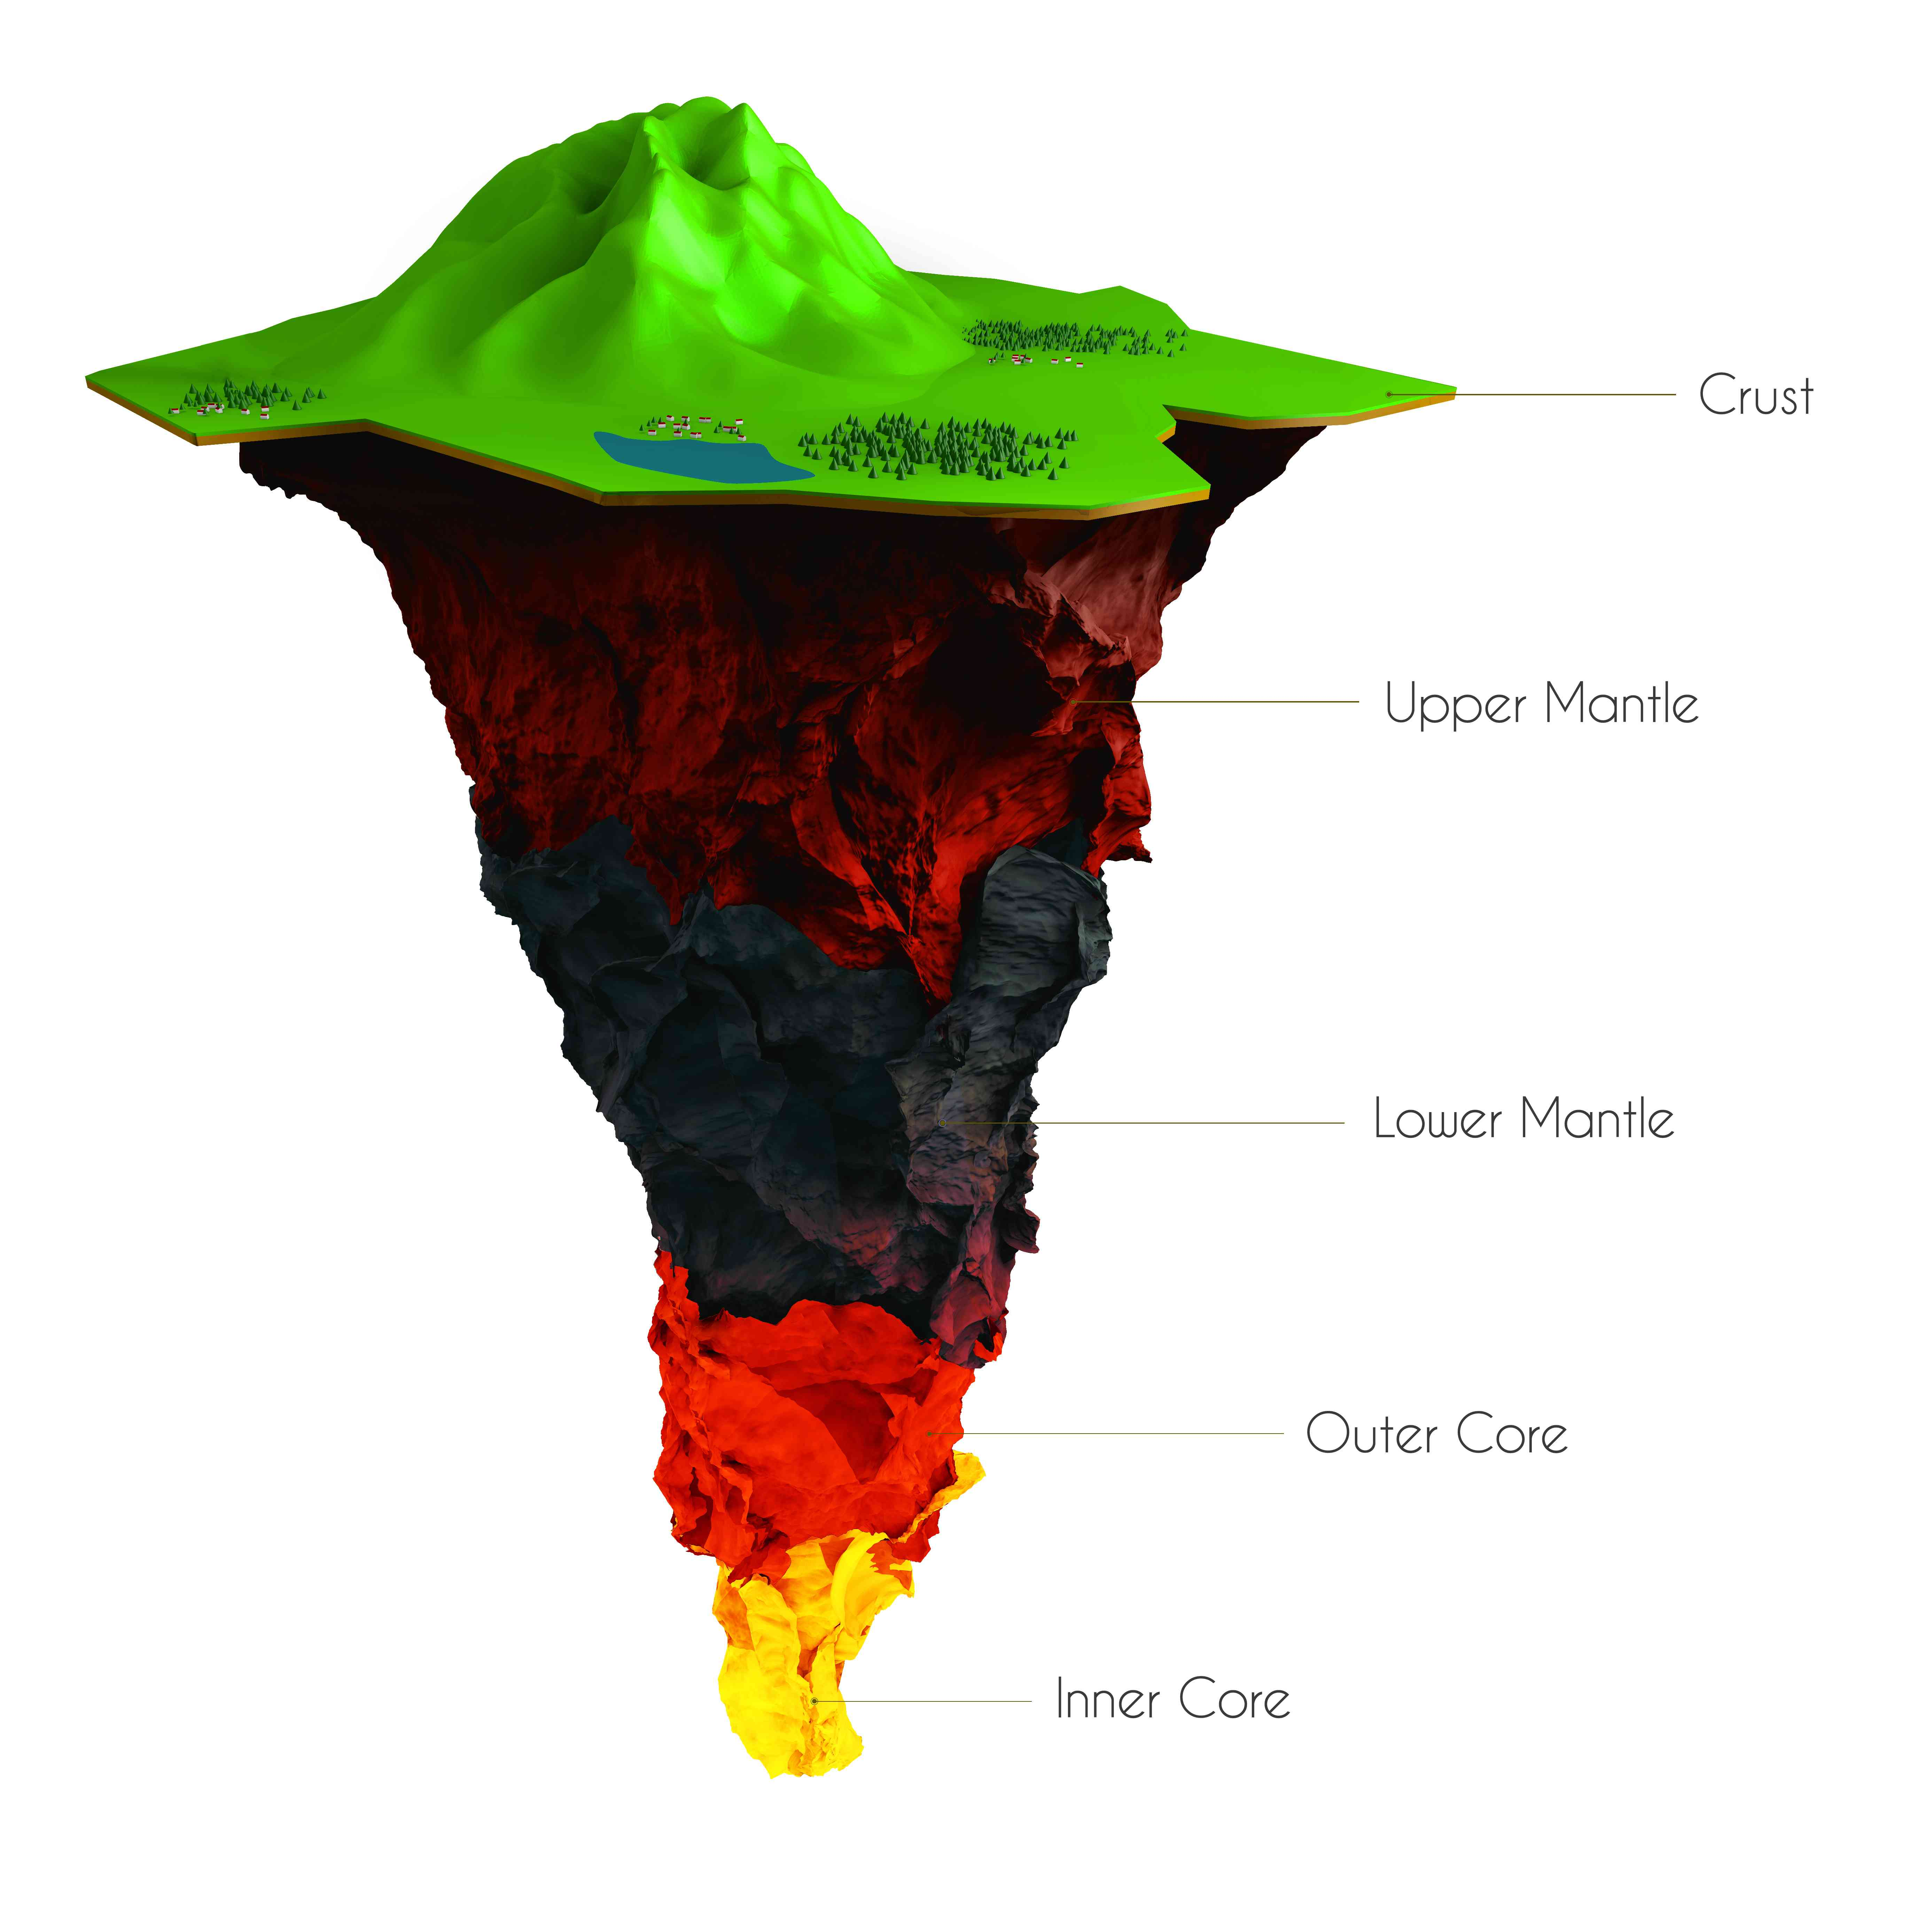 An illustration of the Earth's layers